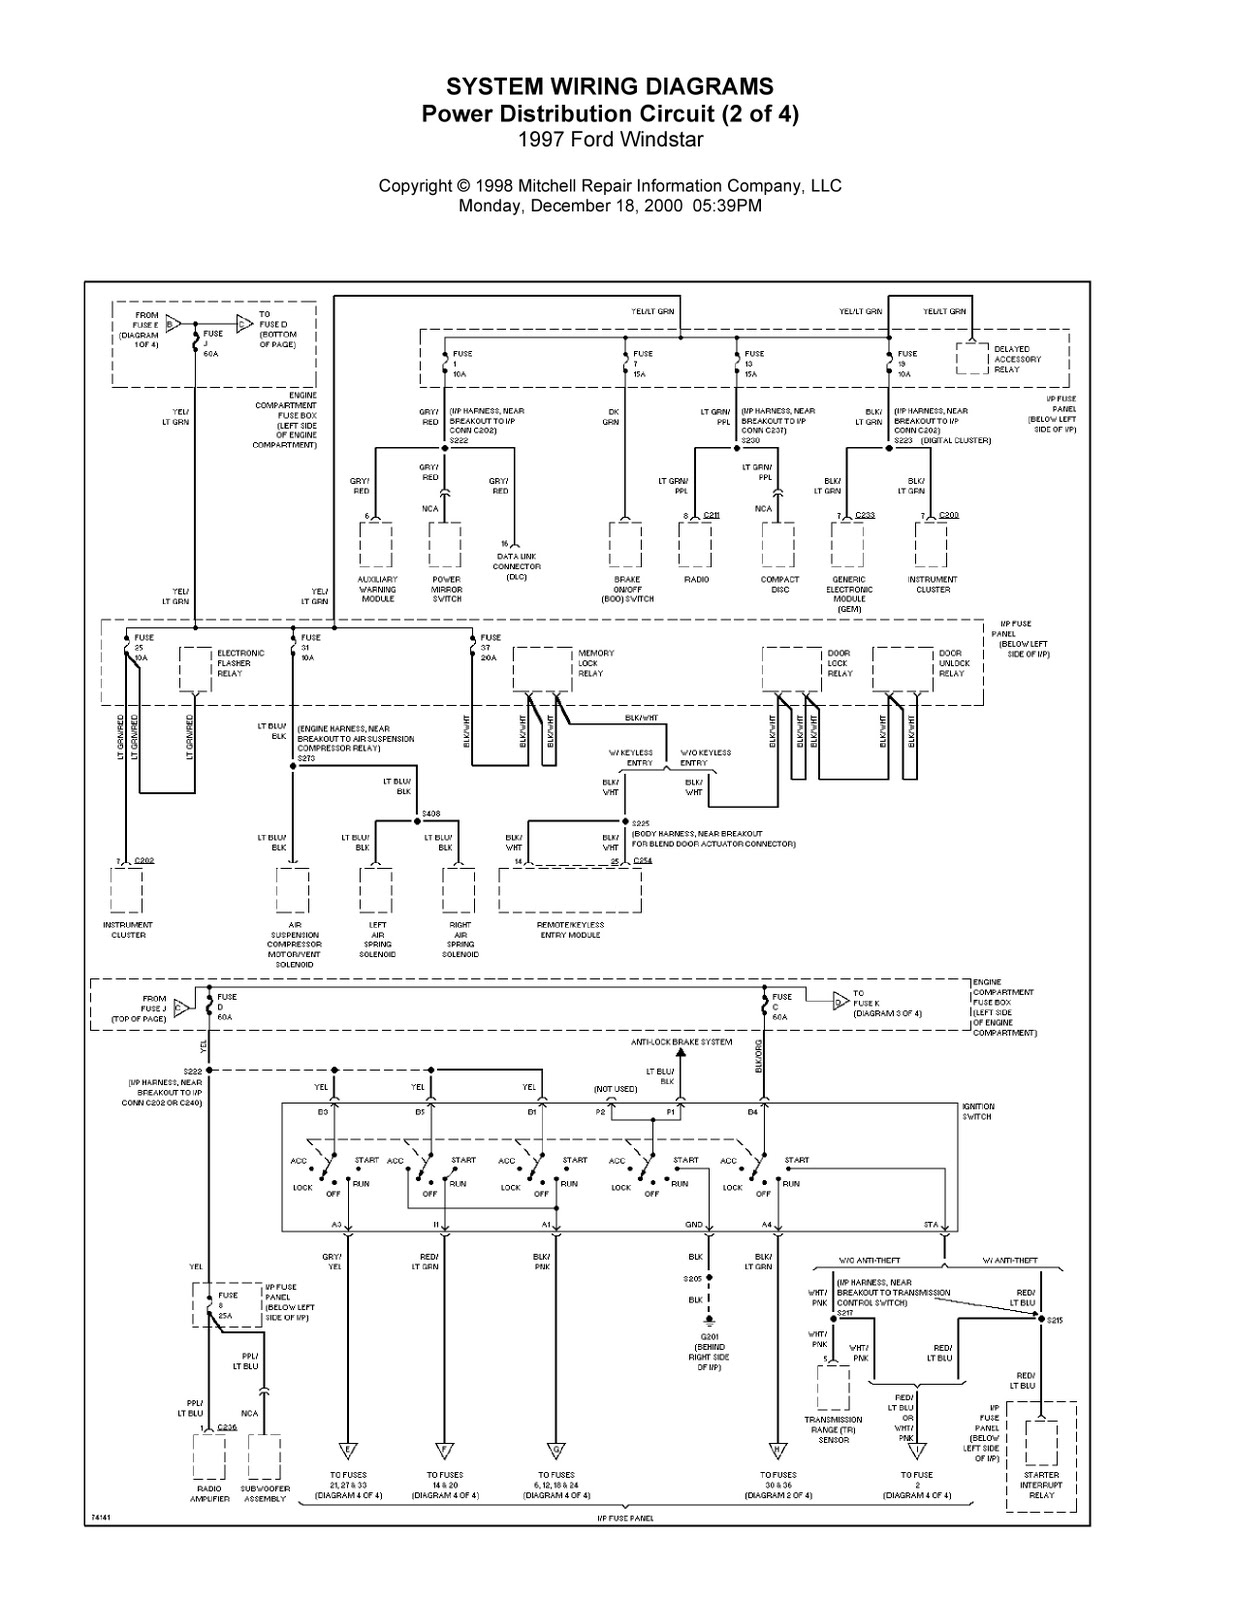 hight resolution of 1997 ford windstar complete system wiring diagrams ford windstar wiring schematic